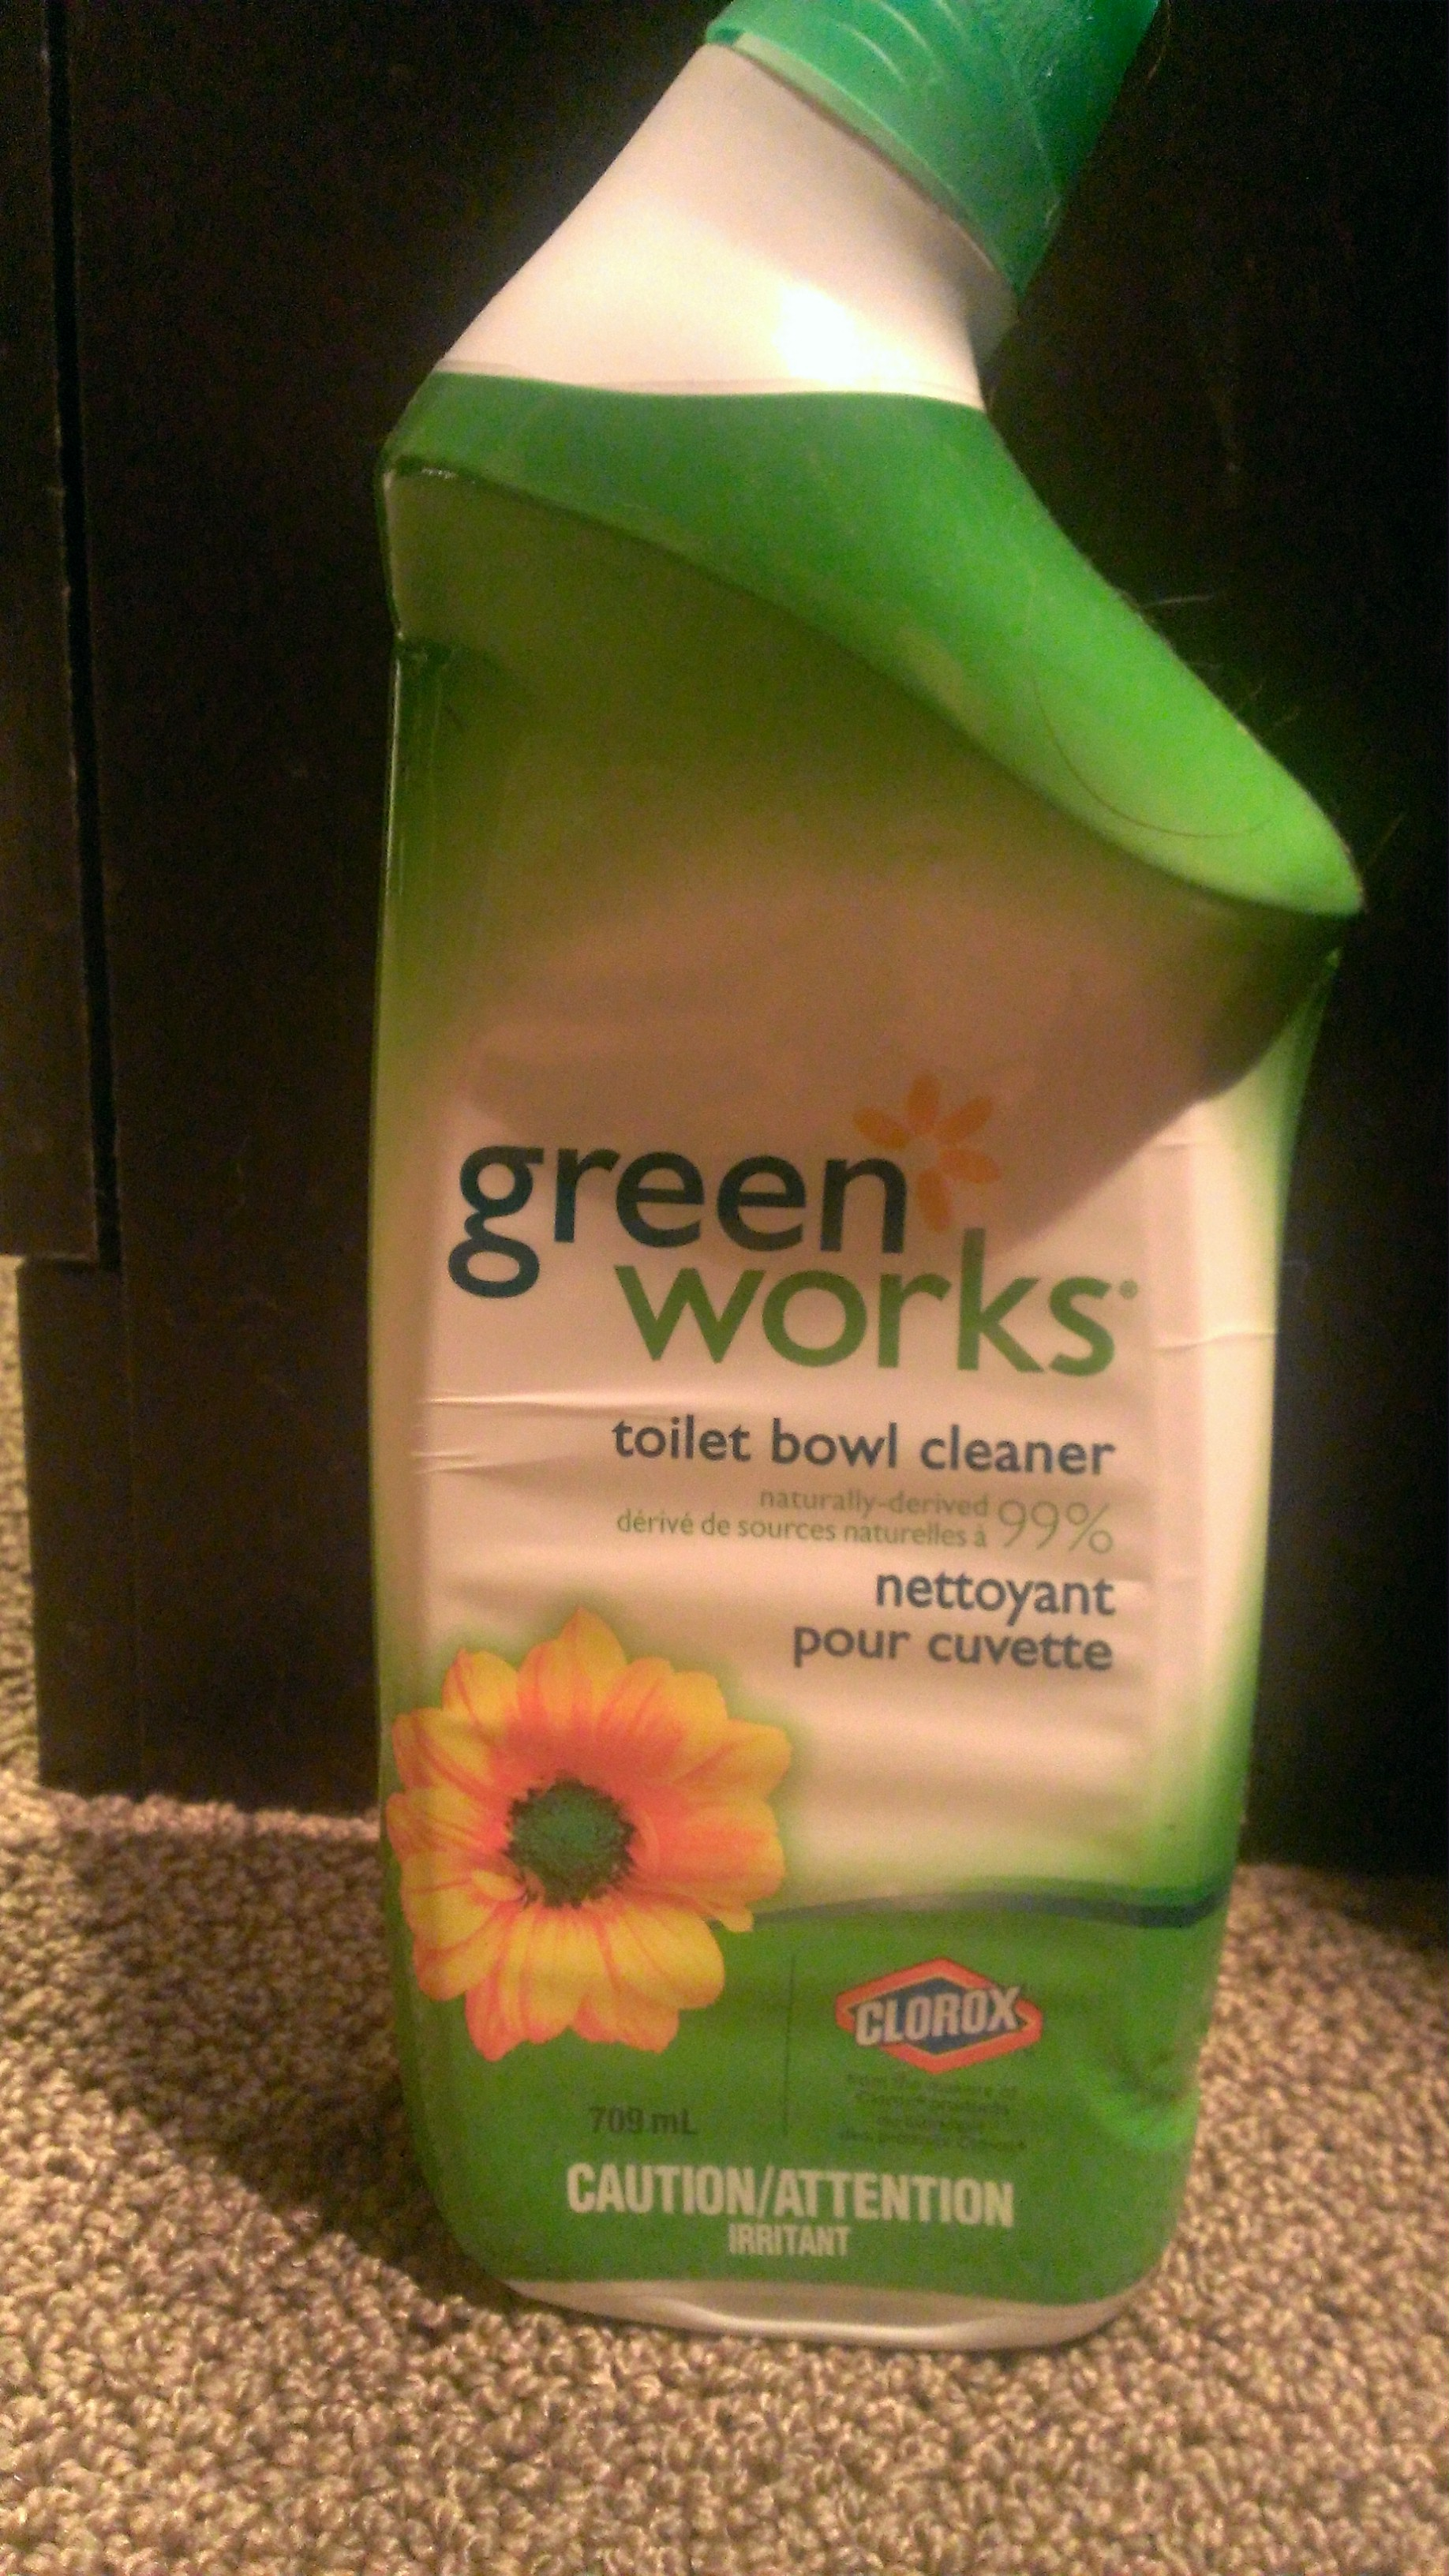 Green Works Natural Toilet Bowl Cleaner Reviews In